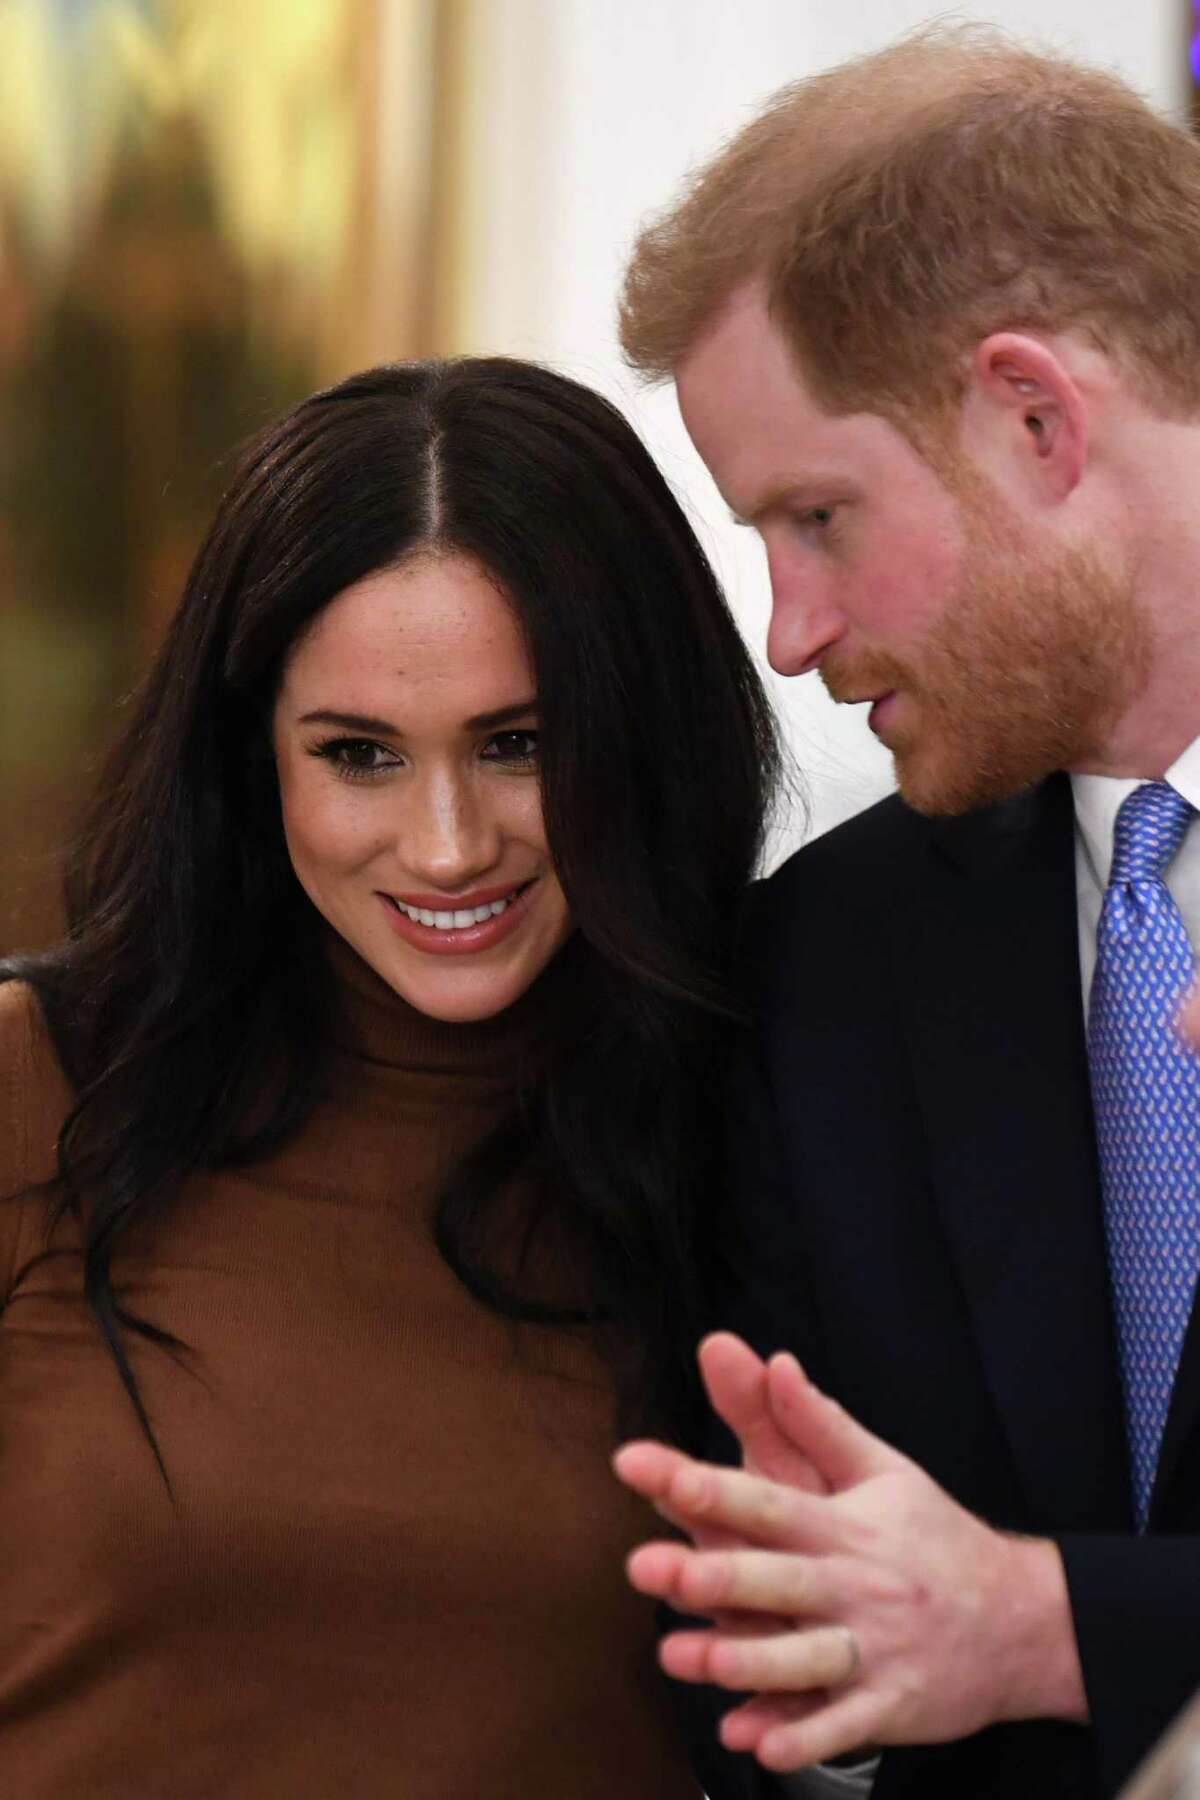 (FILES) In this file photo taken on January 07, 2020 Britain's Prince Harry, Duke of Sussex and Meghan, Duchess of Sussex react during their visit to Canada House in thanks for the warm Canadian hospitality and support they received during their recent stay in Canada, in London. - Britain's Prince Harry and his wife Meghan will give up their titles and stop receiving public funds following their decision to give up front-line royal duties, Buckingham Palace said on January 18, 2020.